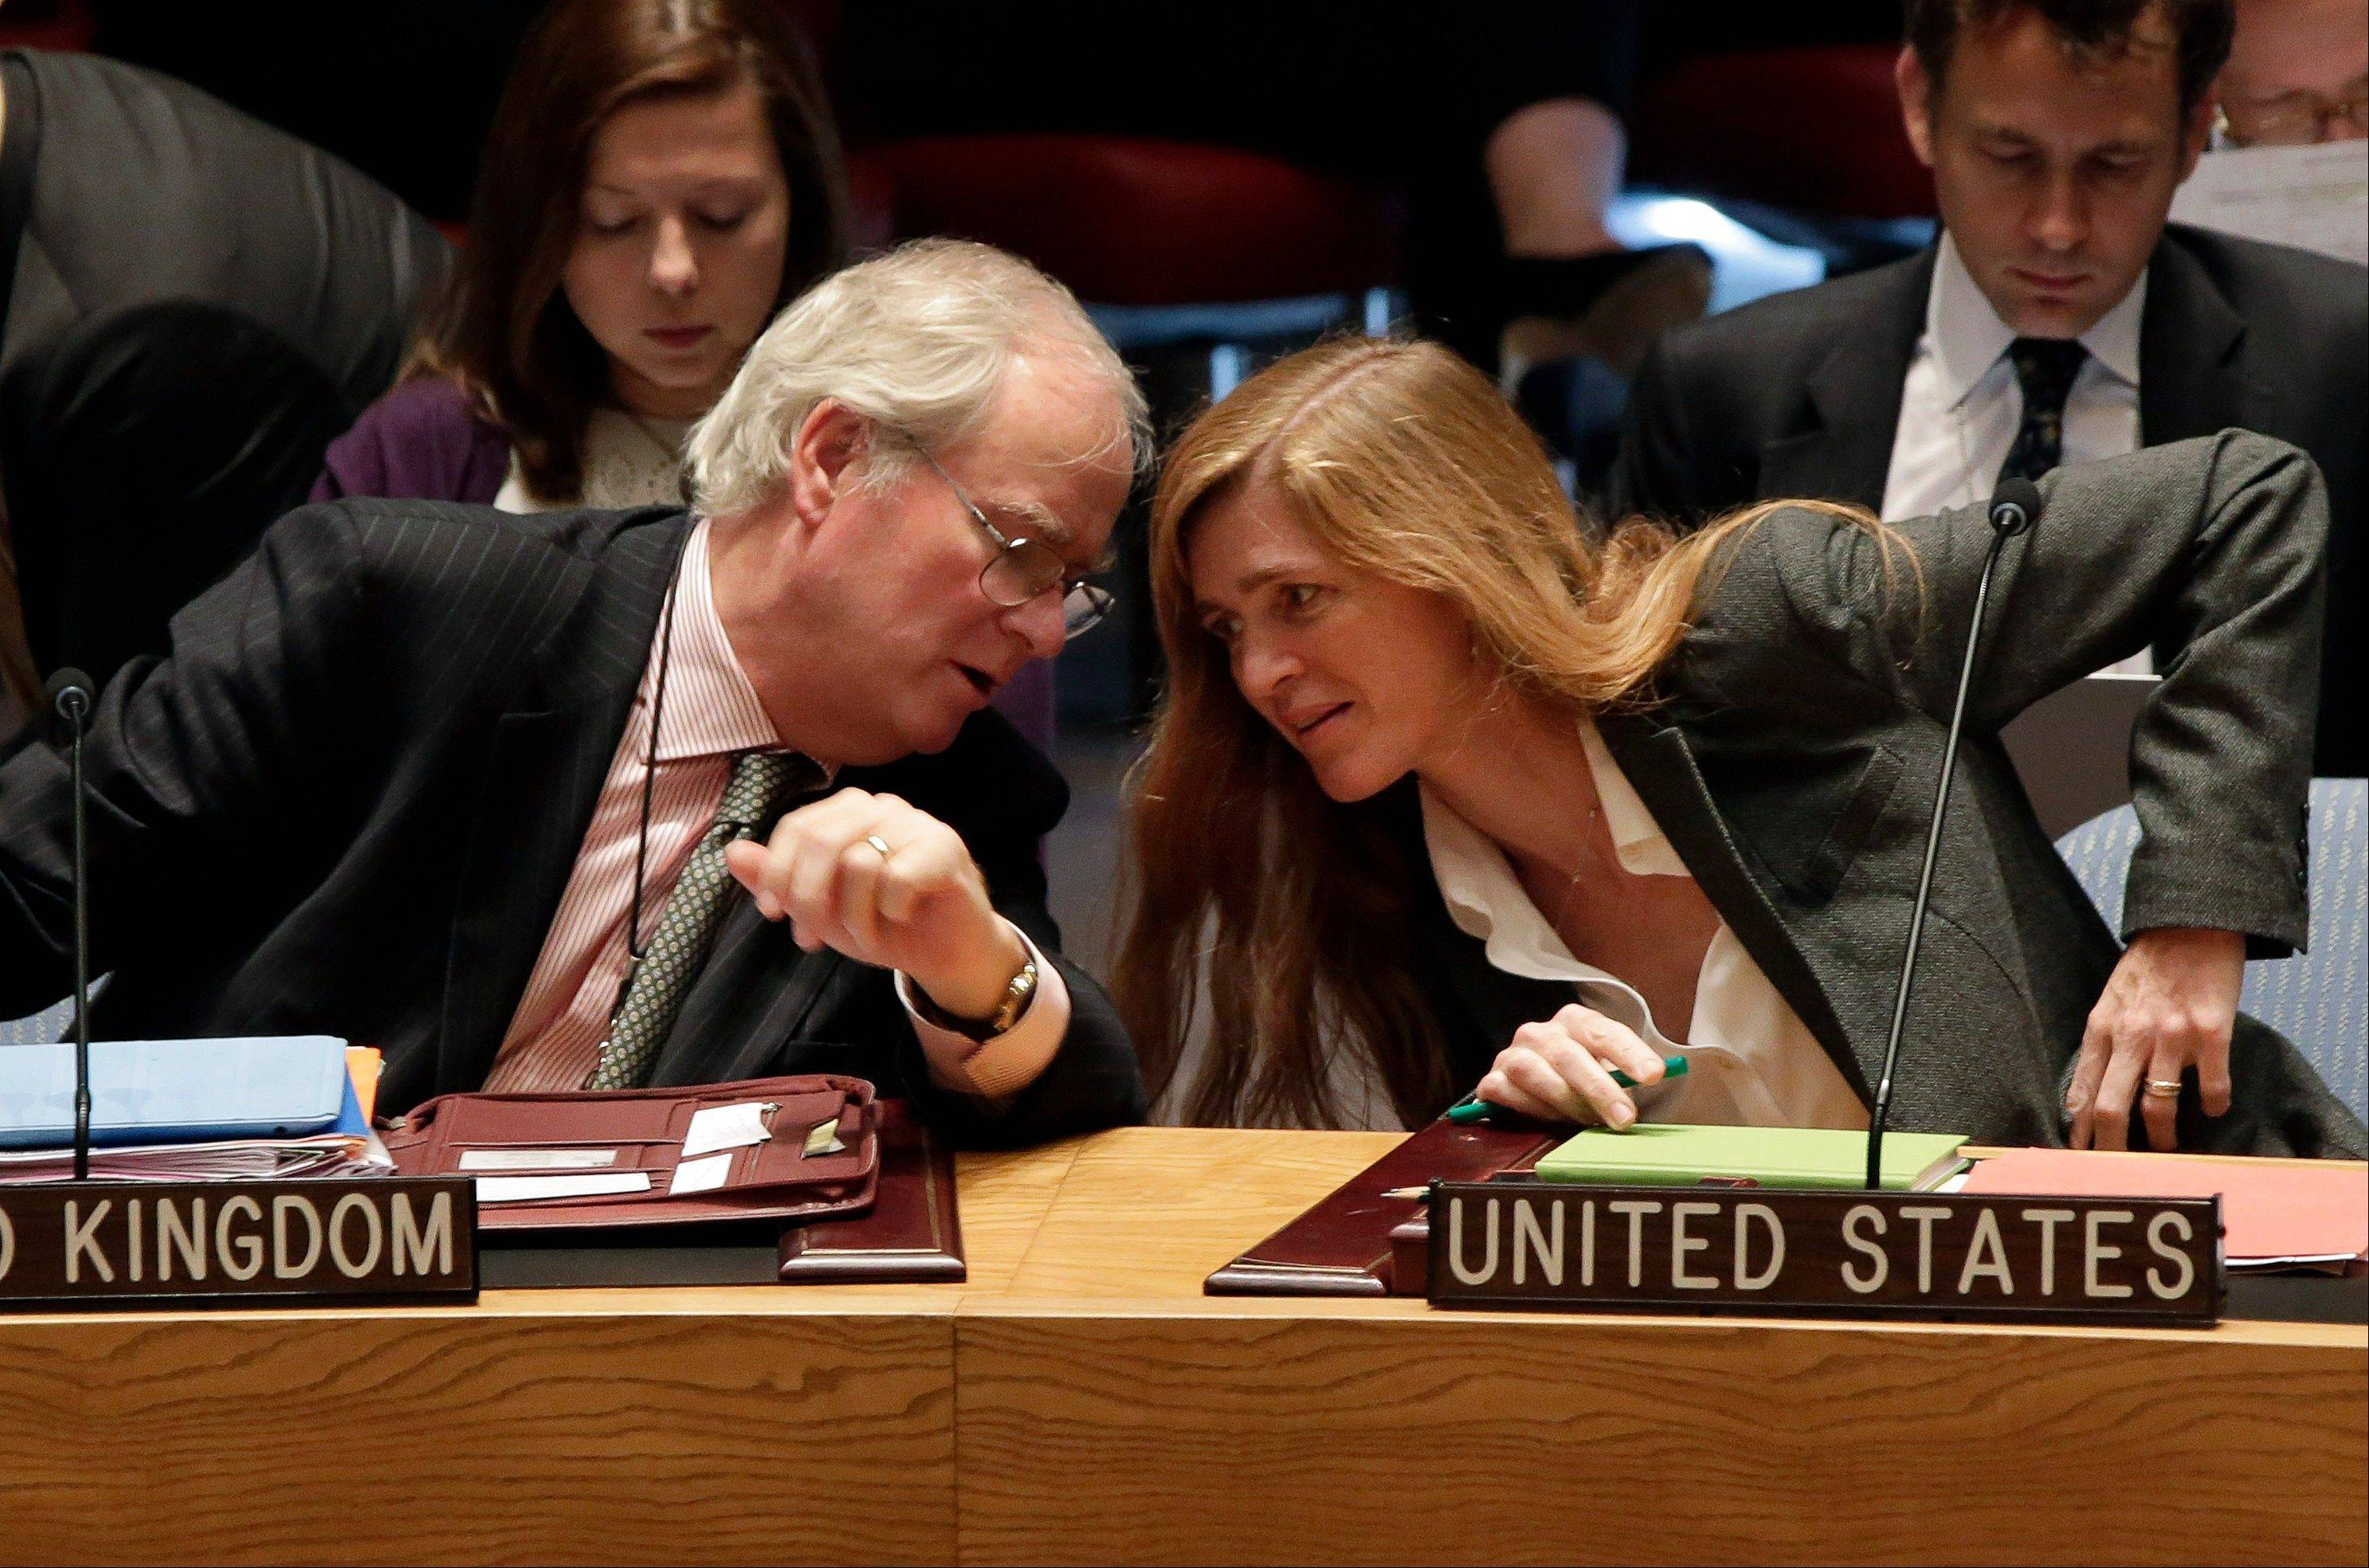 British Ambassador Mark Lyall Grant and U.S. Ambassador Samantha Power confer in the U.N. Security Council on Tuesday. Moscow insisted a new Security Council resolution on Syria not allow the use of force.